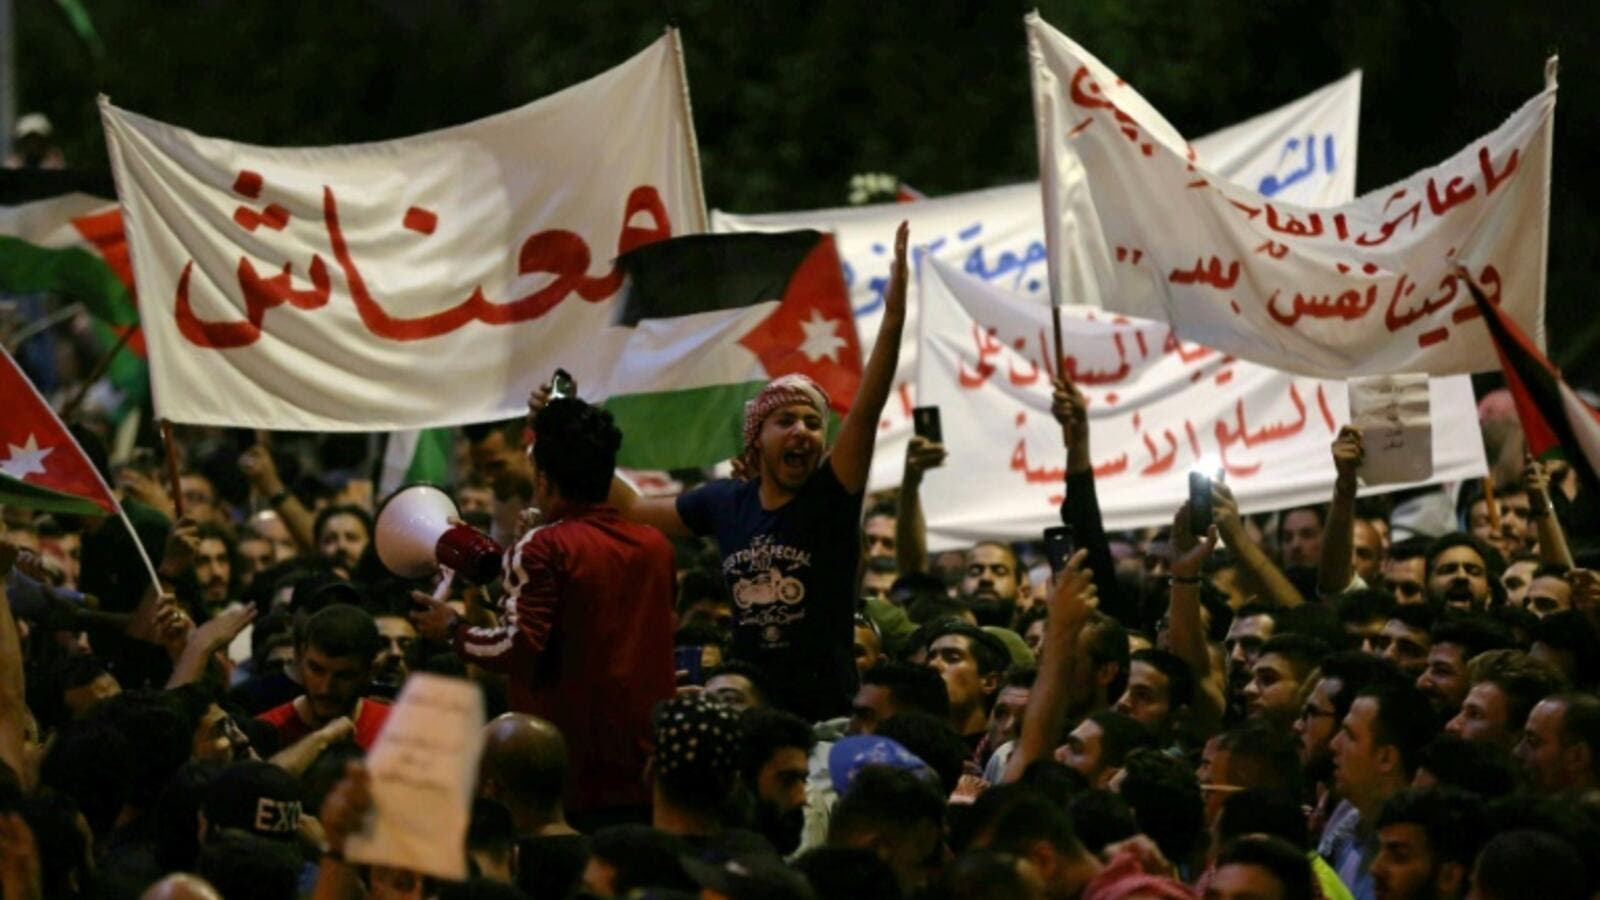 Unionists pressured by crowd to resume protests. (AFP/ Khalil MAZRAAWI)